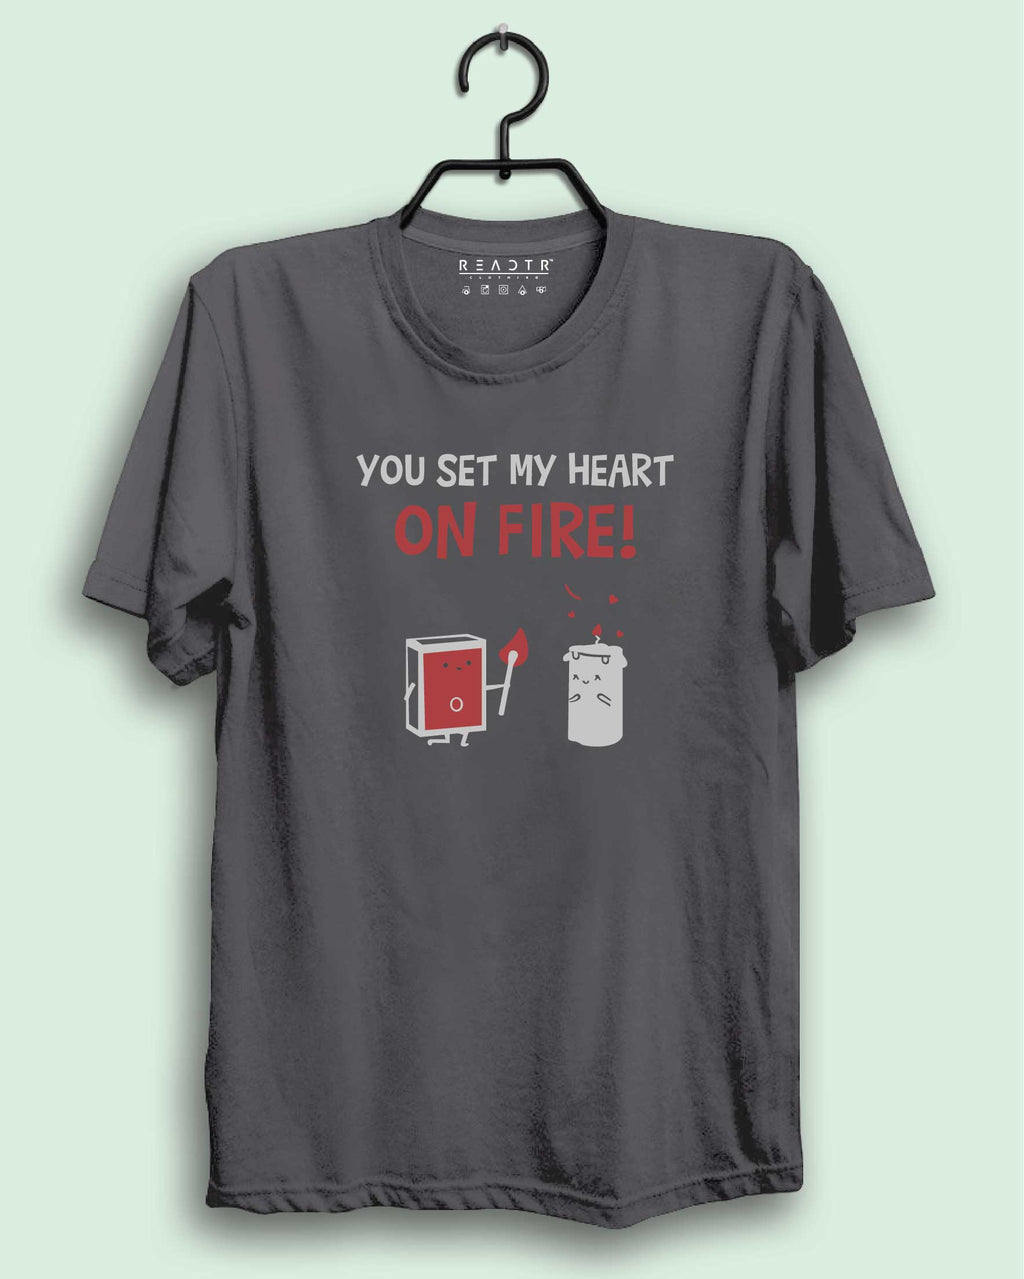 You Set My Heart On Fire Reactr Tshirts For Men - Eyewearlabs